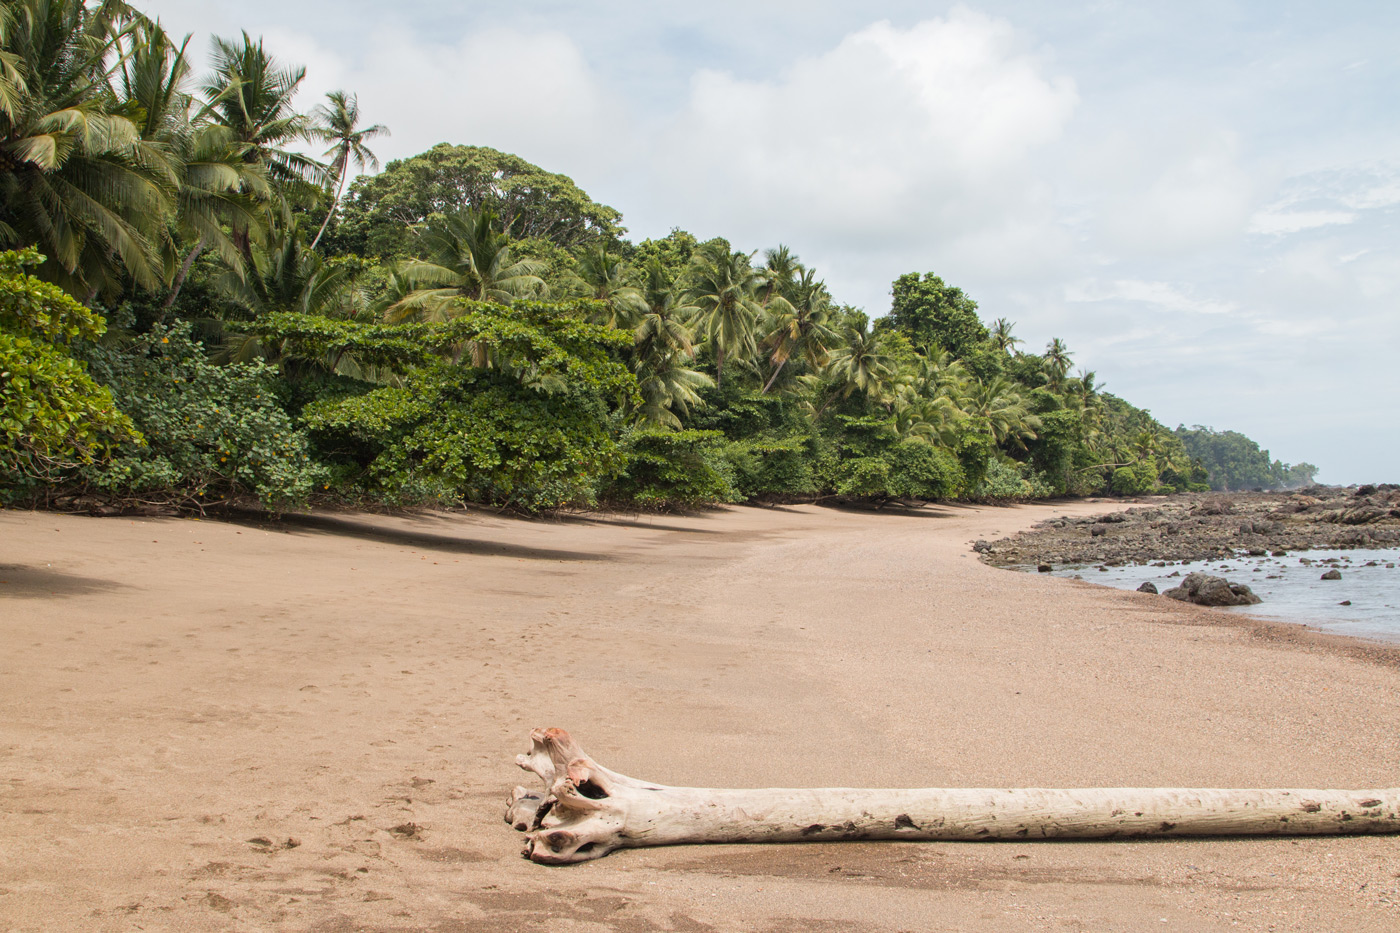 Remote beach in Corcovado National Park